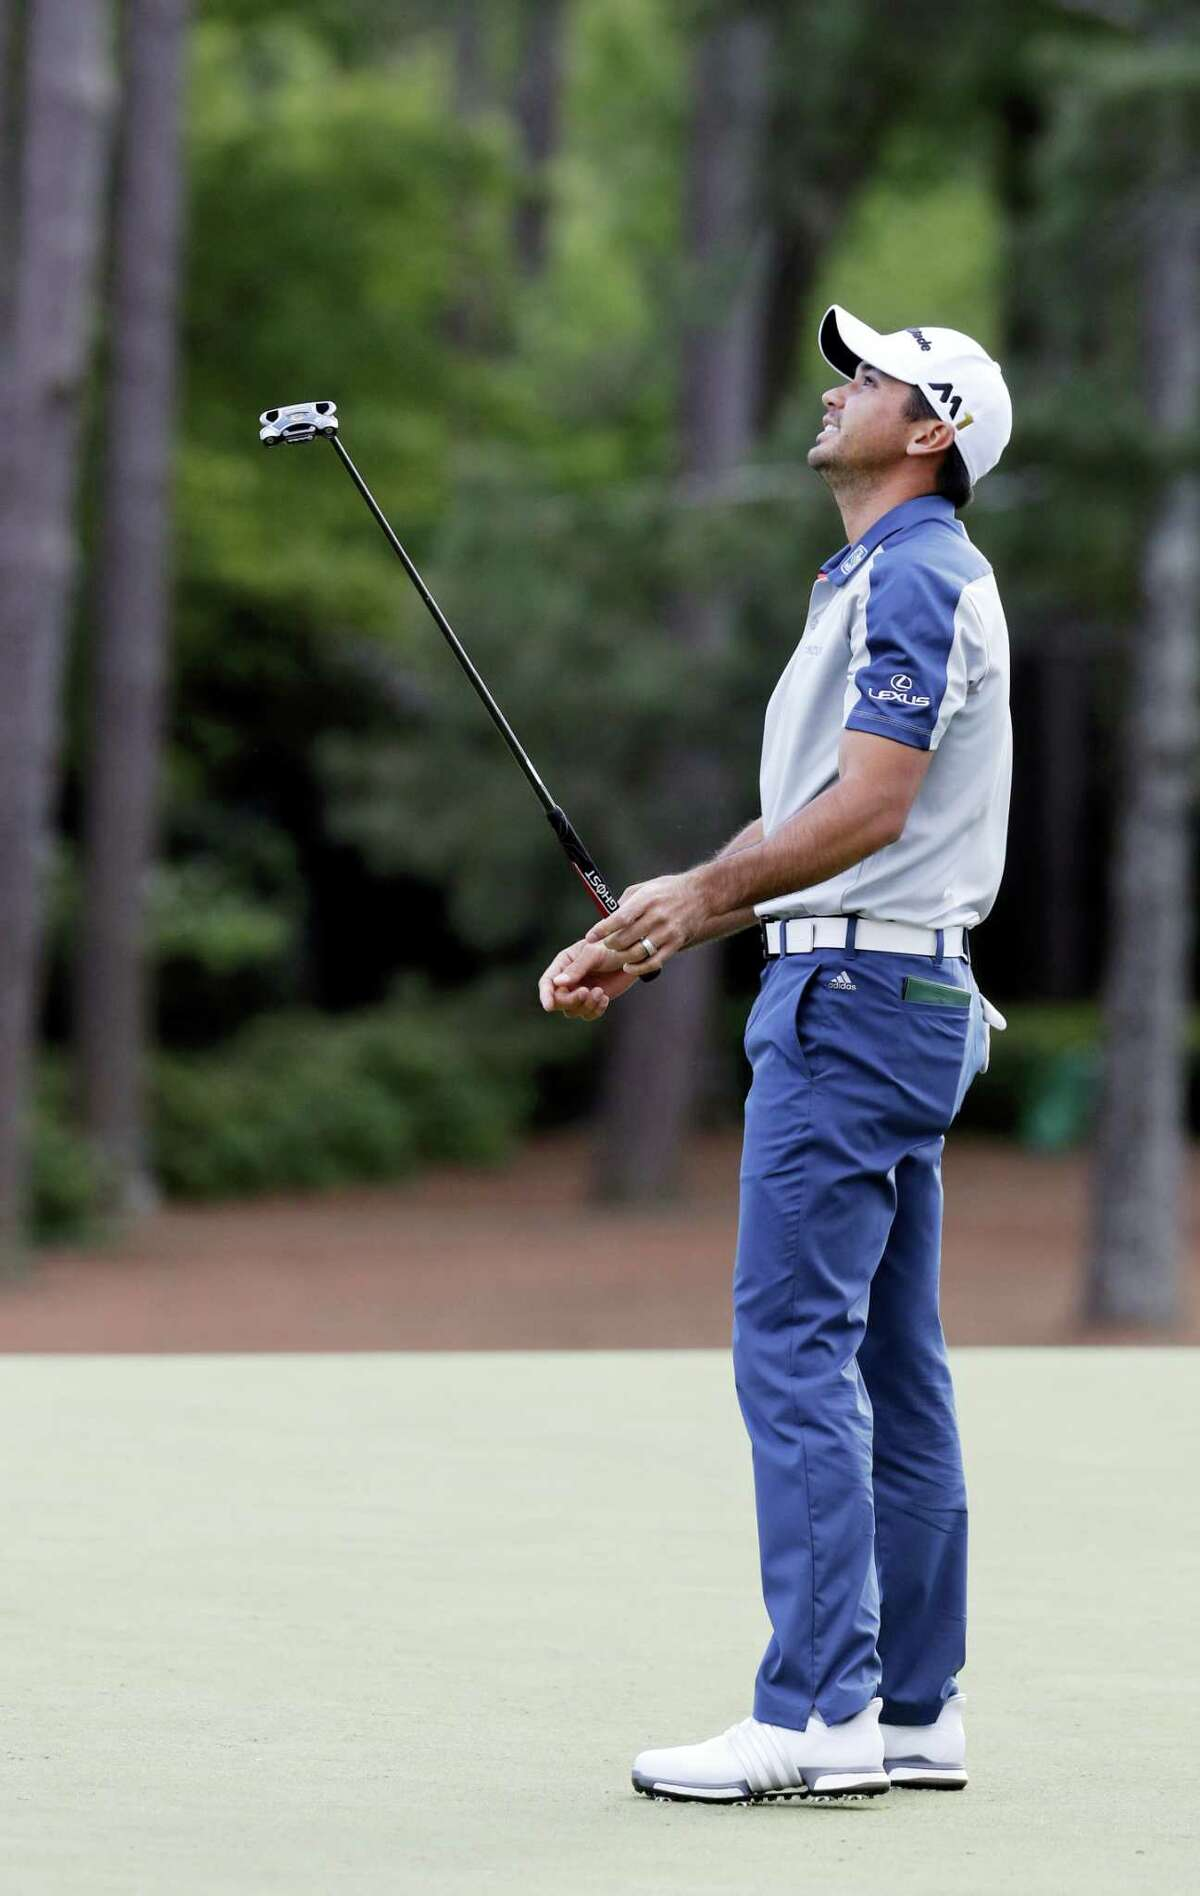 Jason Day reacts after missing a birdie putt on the 14th green on Thursday.